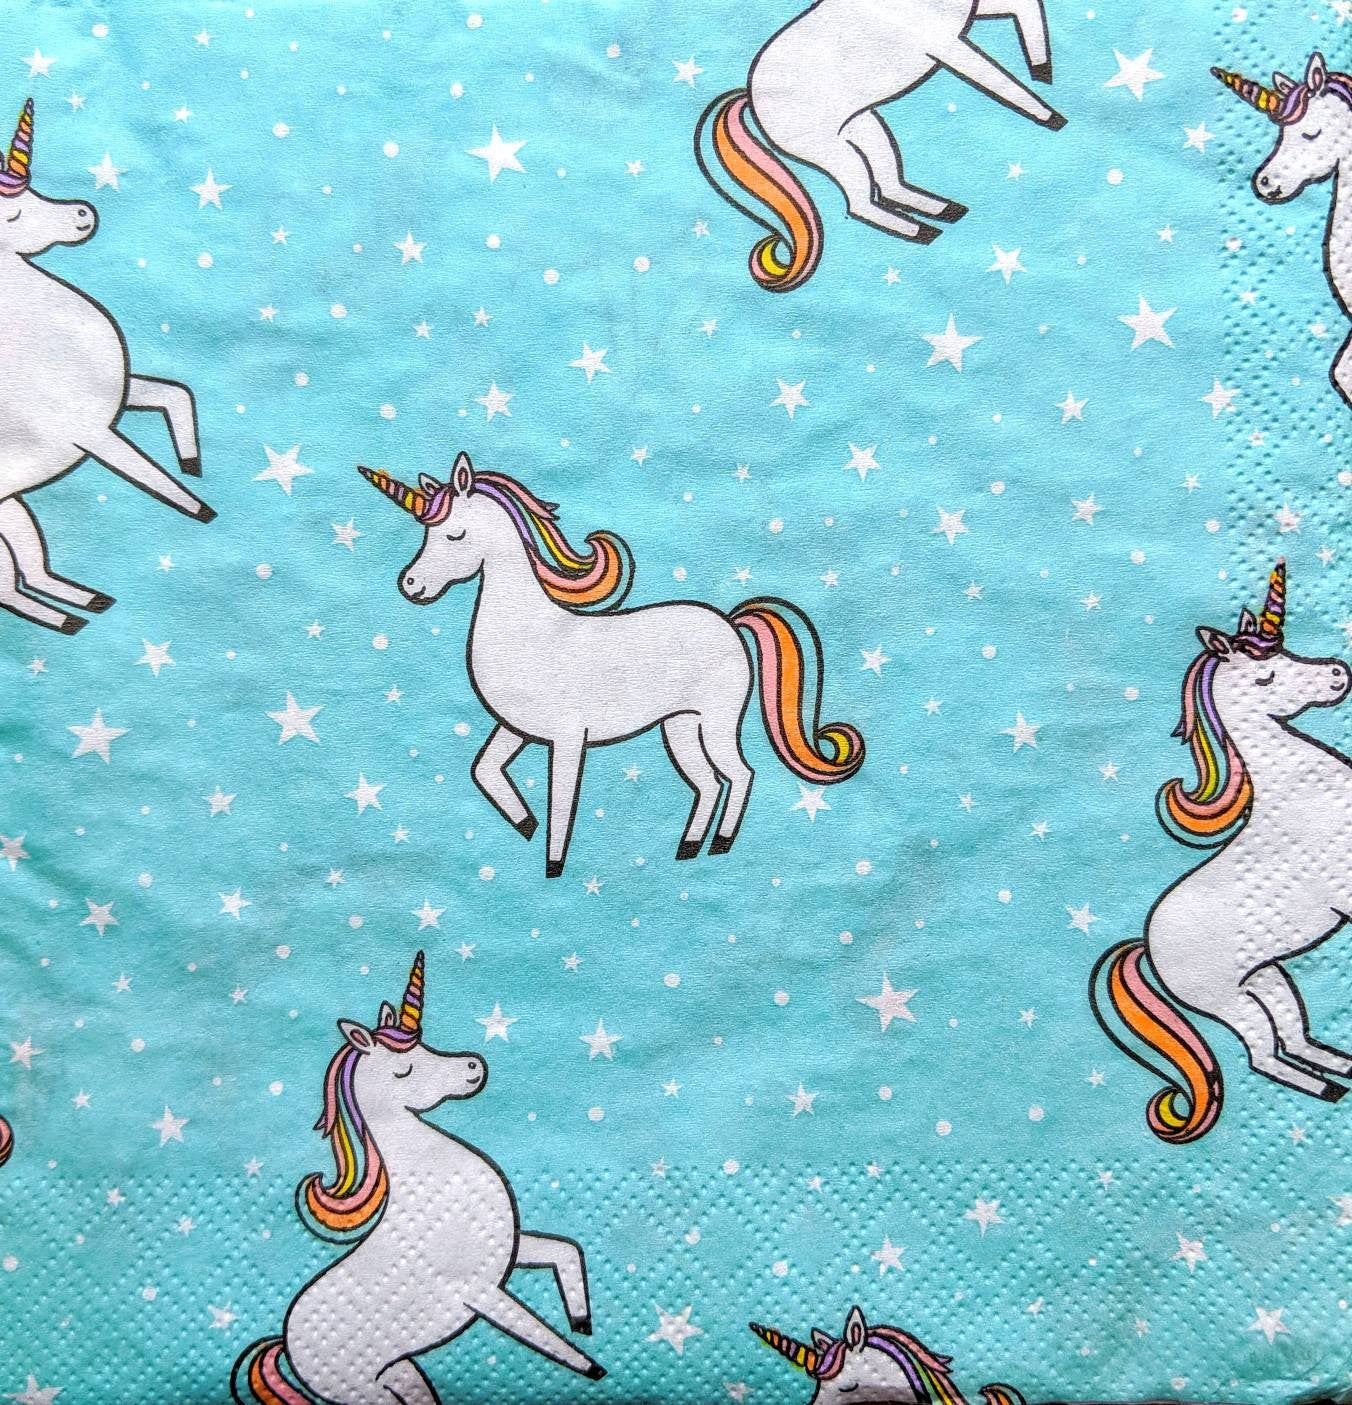 Rainbow Unicorn - Ninnys Napkins